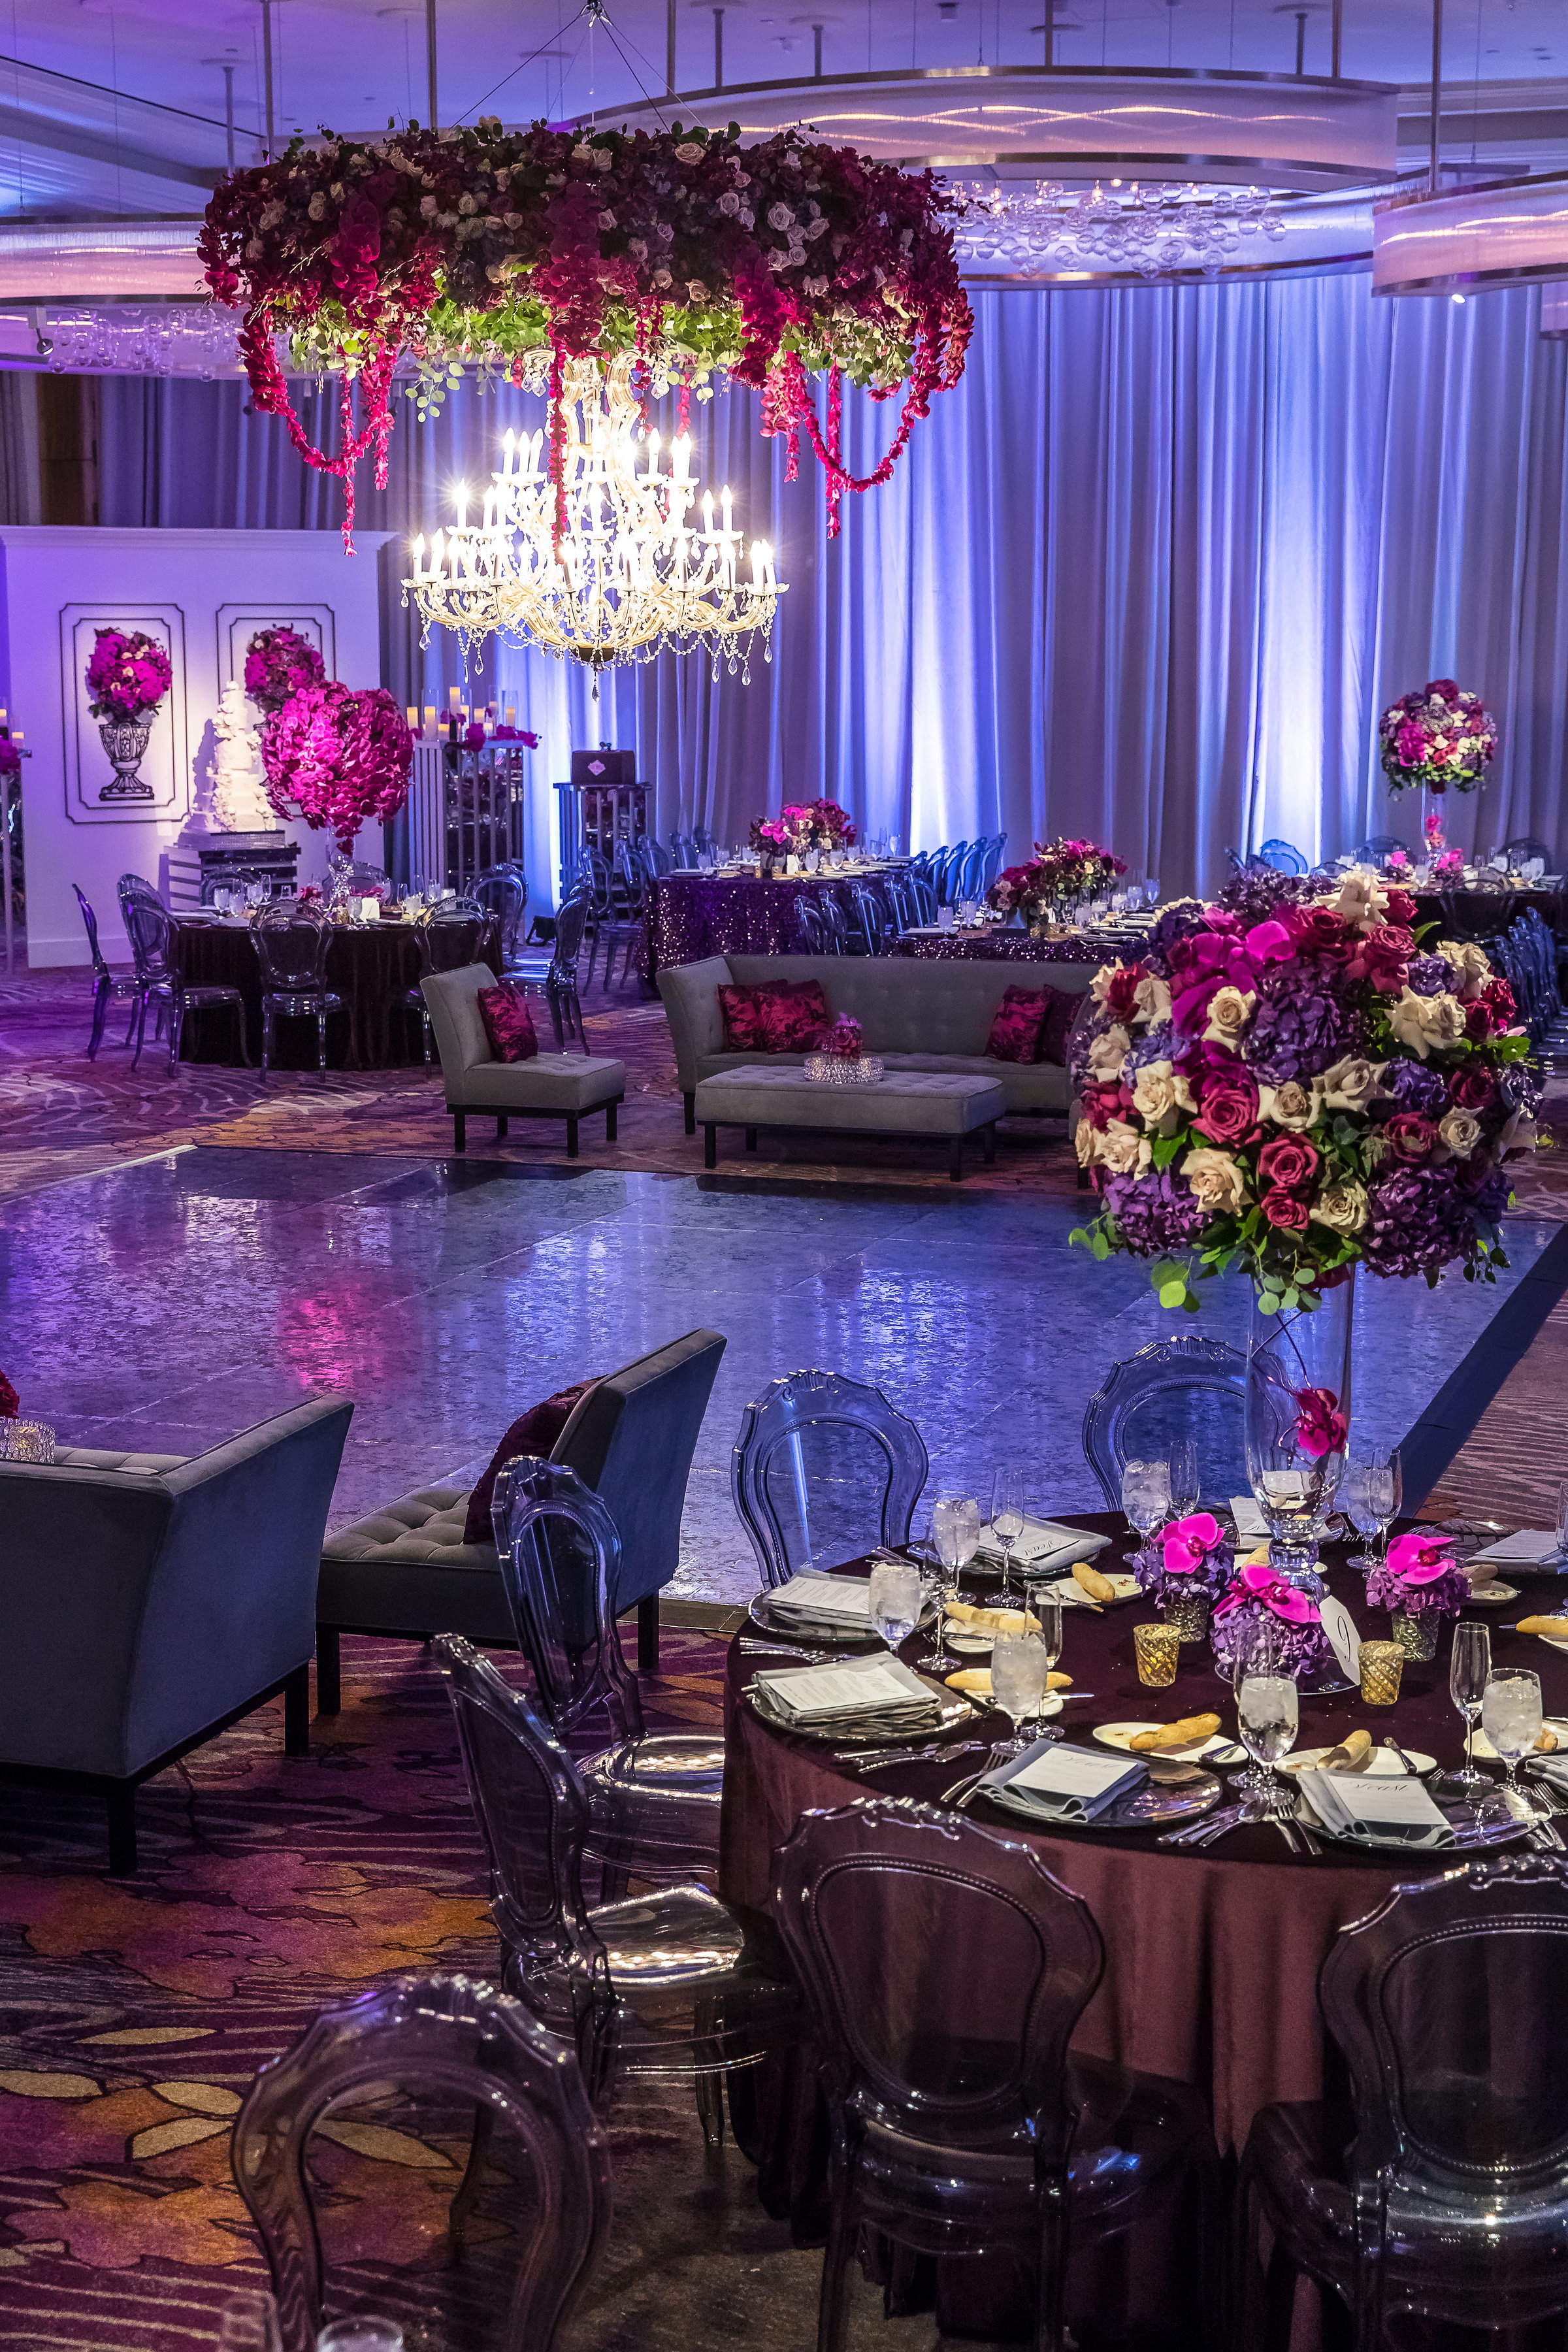 Massive Hanging Chandelier over a sweetheart table with orchid trees.Wedding Planner: Andrea Eppolito Events    Photography  Brian Leahy    Videography  HOO Films    Venue & Catering:  Mandarin Oriental  / Waldorf Astoria   Floral & Decor: Destinations by Design    Lighting: LED Unplugged    Music:  DJ Breeze II    Hair & Make Up: Amelia C & Co    Invitations by  Bliss & Bone    Menu and Escort Cards by  Meldeen